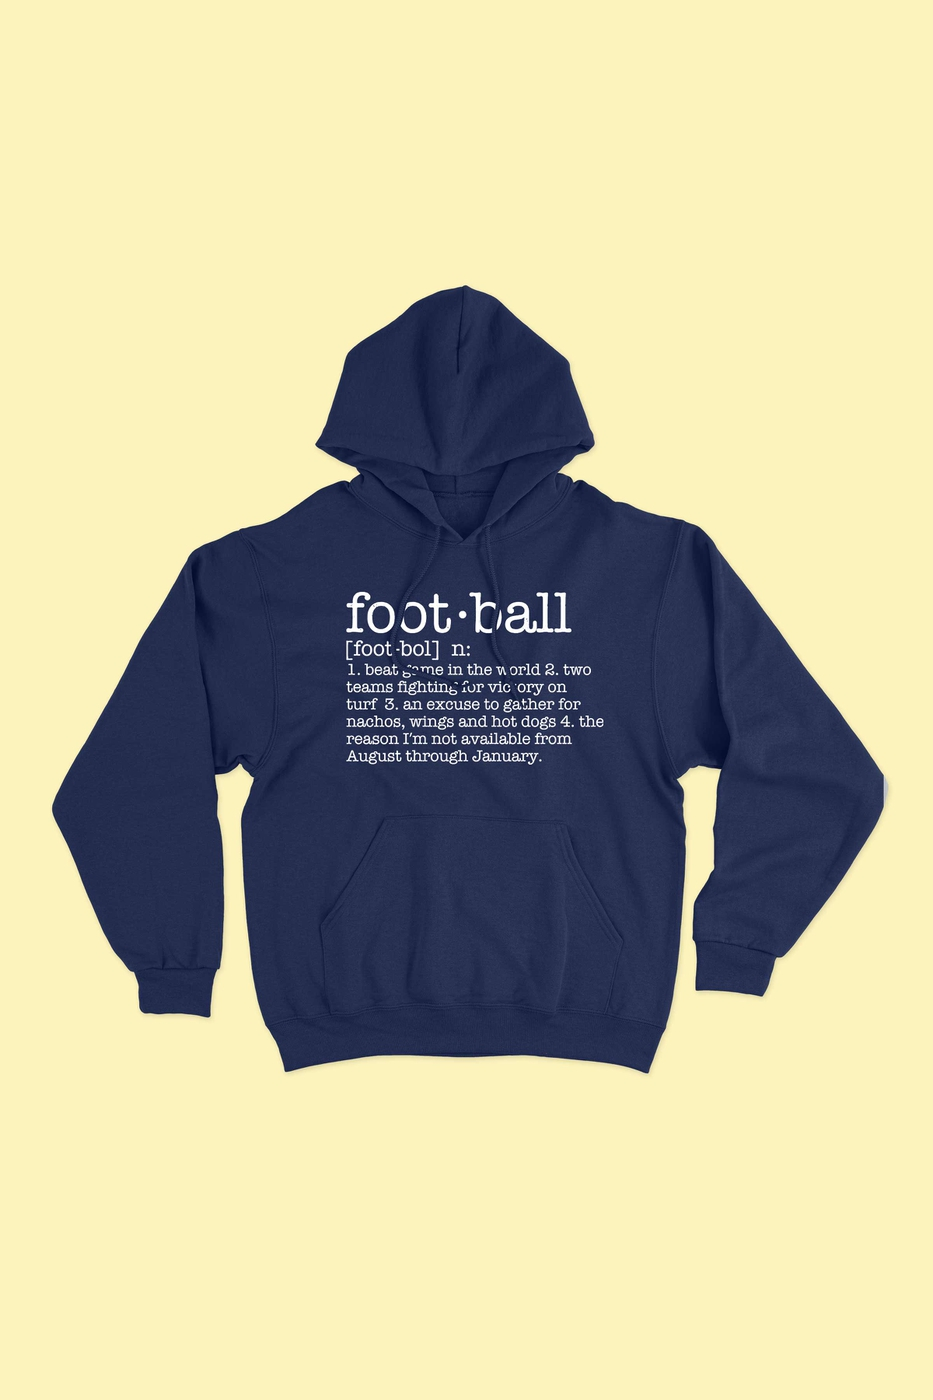 FOOTBALL GAME DAY HOODIE PLUS SIZE - orangeshine.com